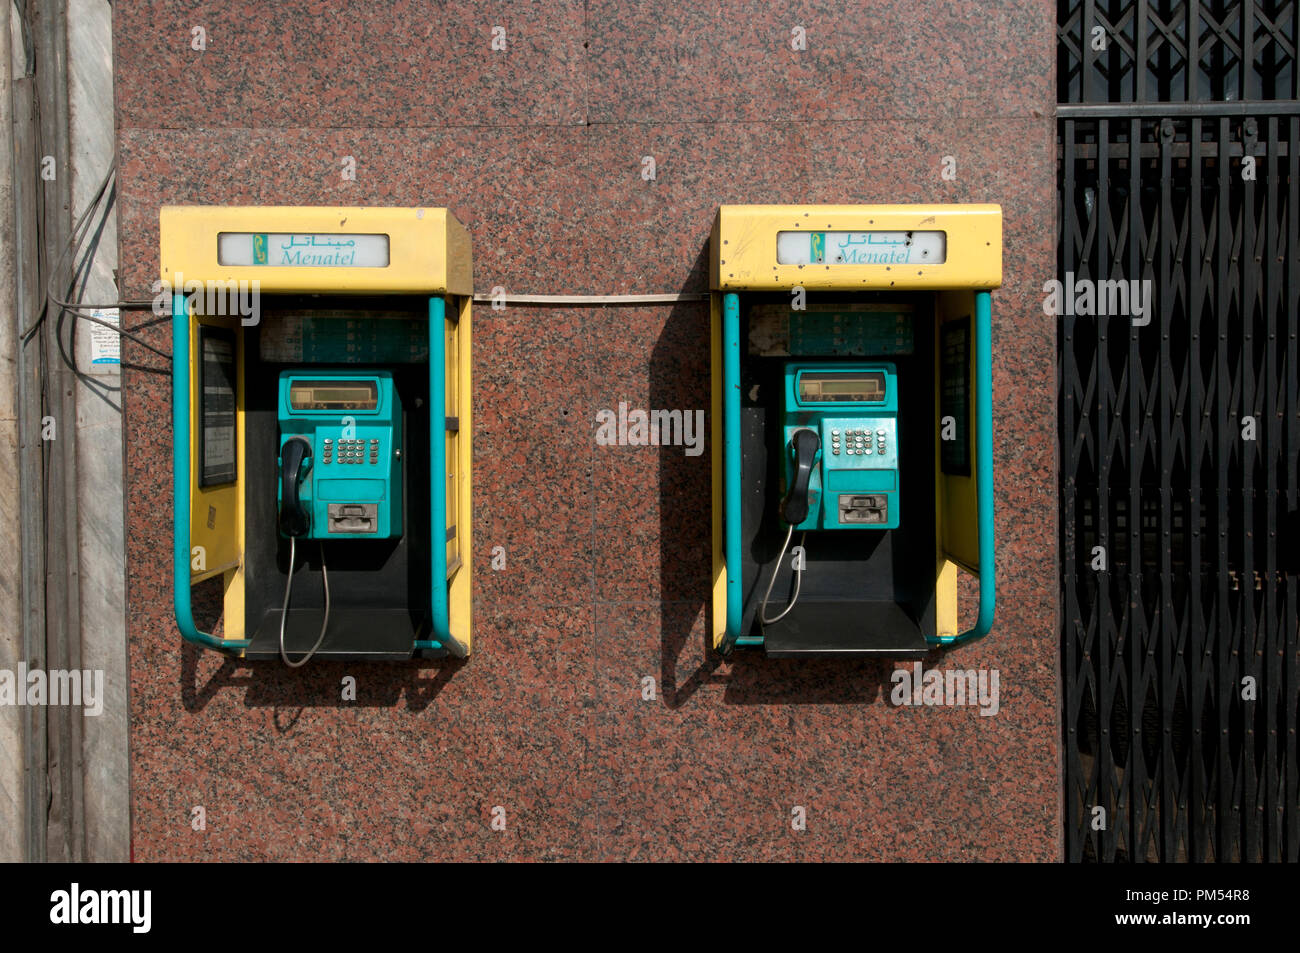 Egypt, Cairo 2014. Two yellow and turquoise phone boxes. - Stock Image